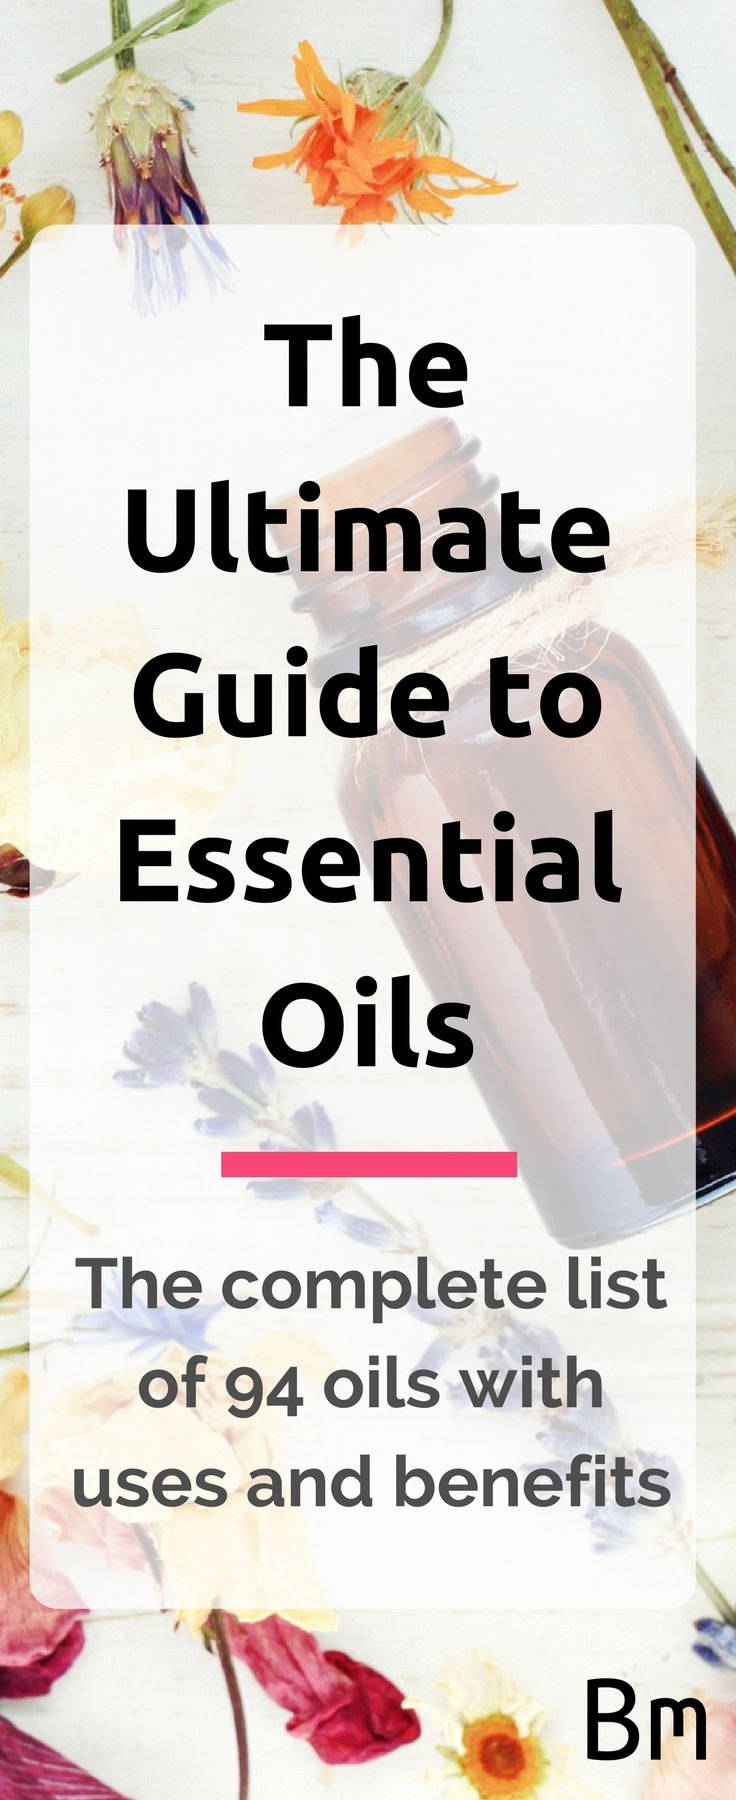 Learn about the benefits of over 94 essential oils and how to use them for clearer skin, longer hair, better sleep, weight loss, aromatherapy and more. Learn more at: https://www.baremetics.com/essential-oils #essentialoils